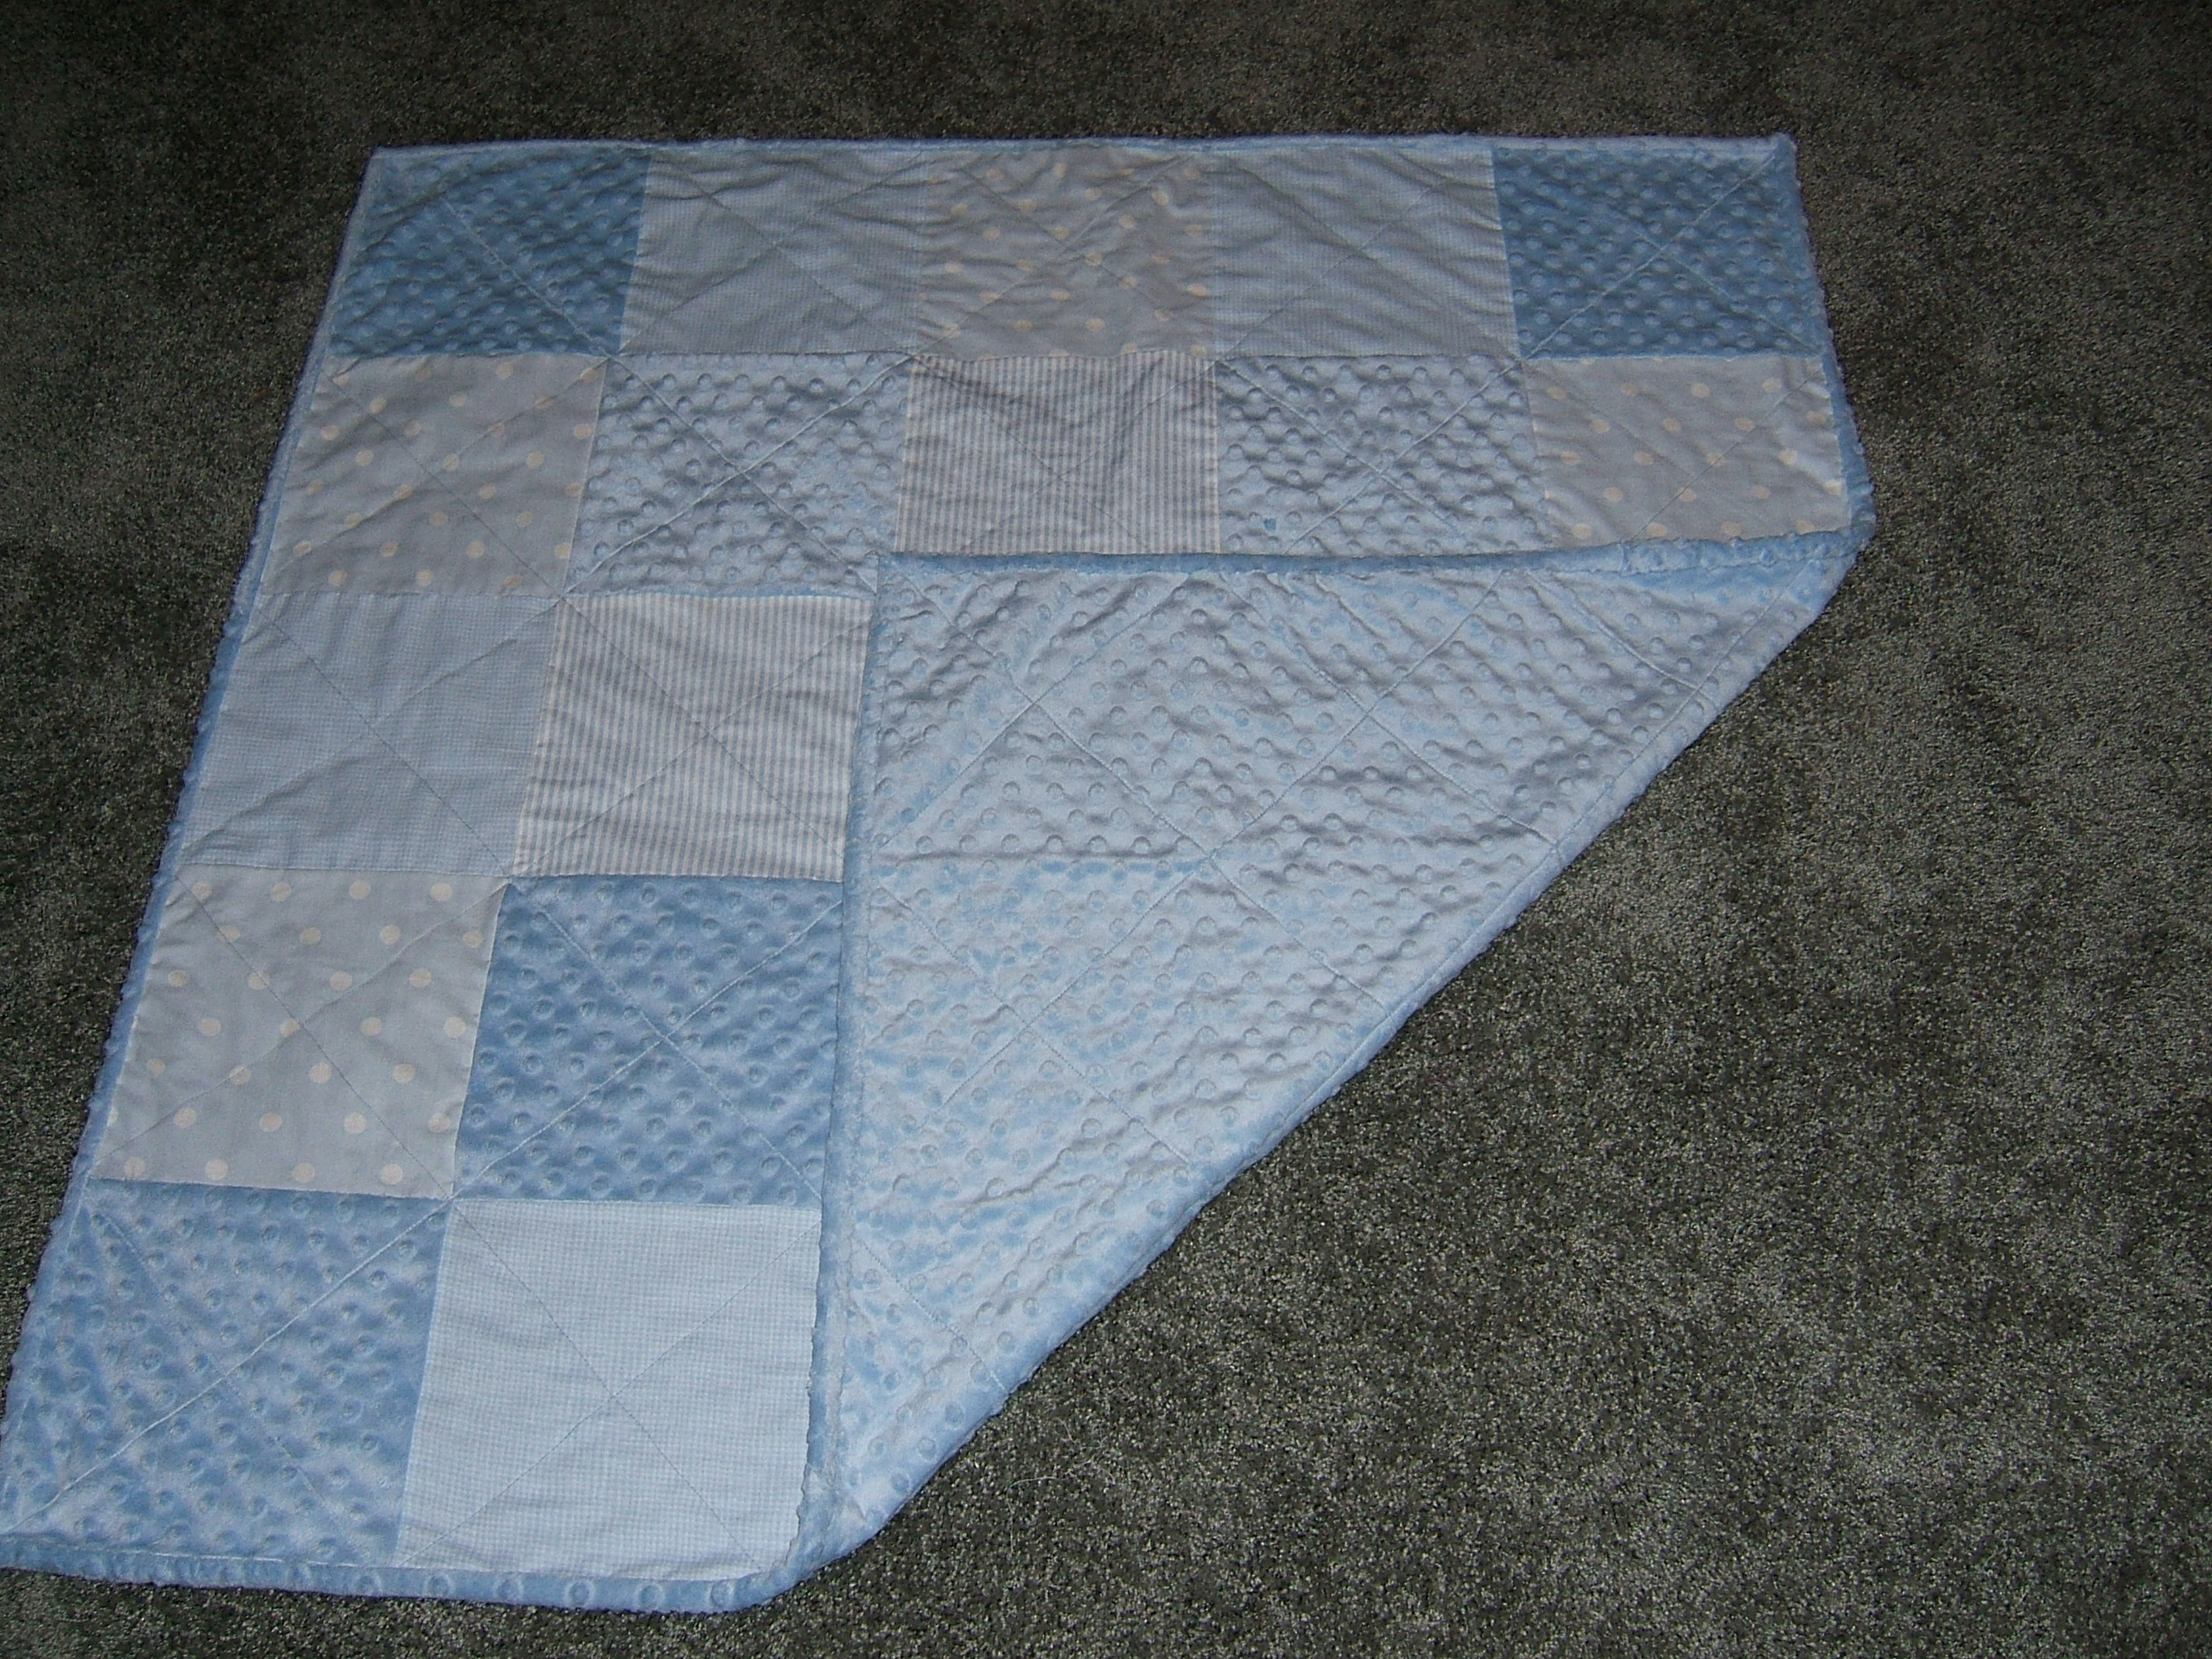 Baby Rooms by Nana, May Seibolt, Custom Embroidery and Quilting